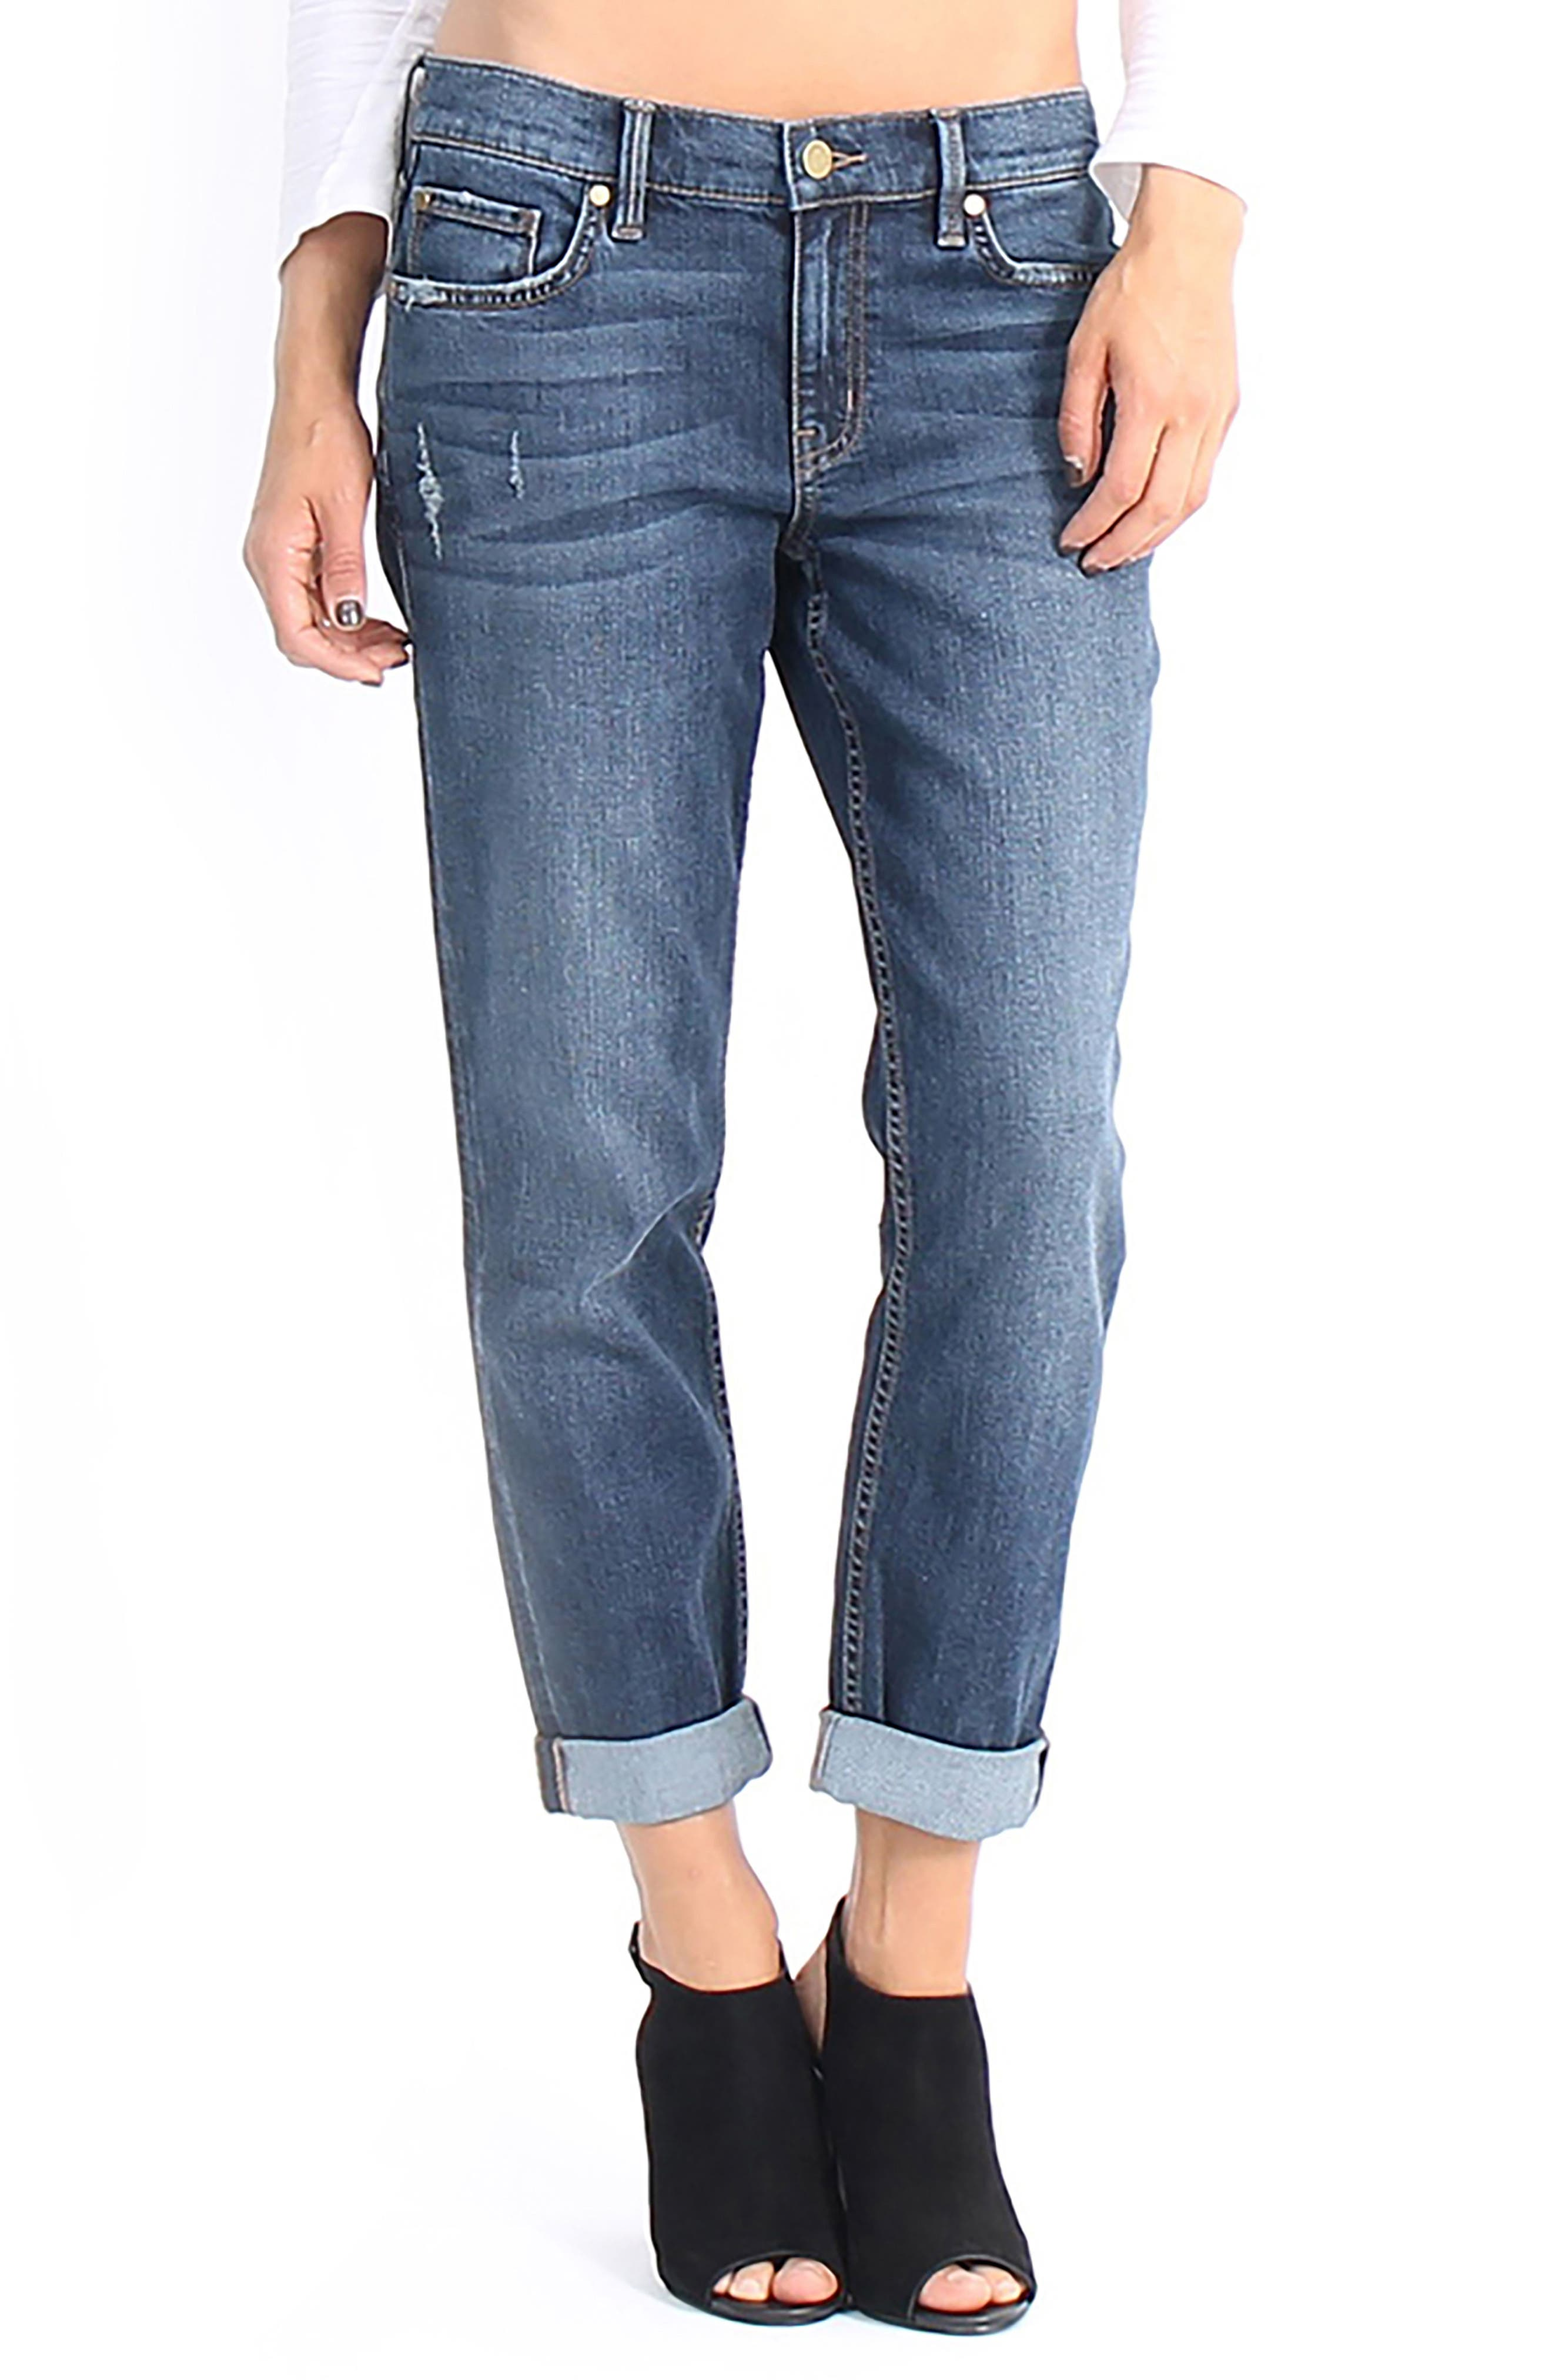 Sienna Stretch Ankle Jeans,                         Main,                         color, Eden